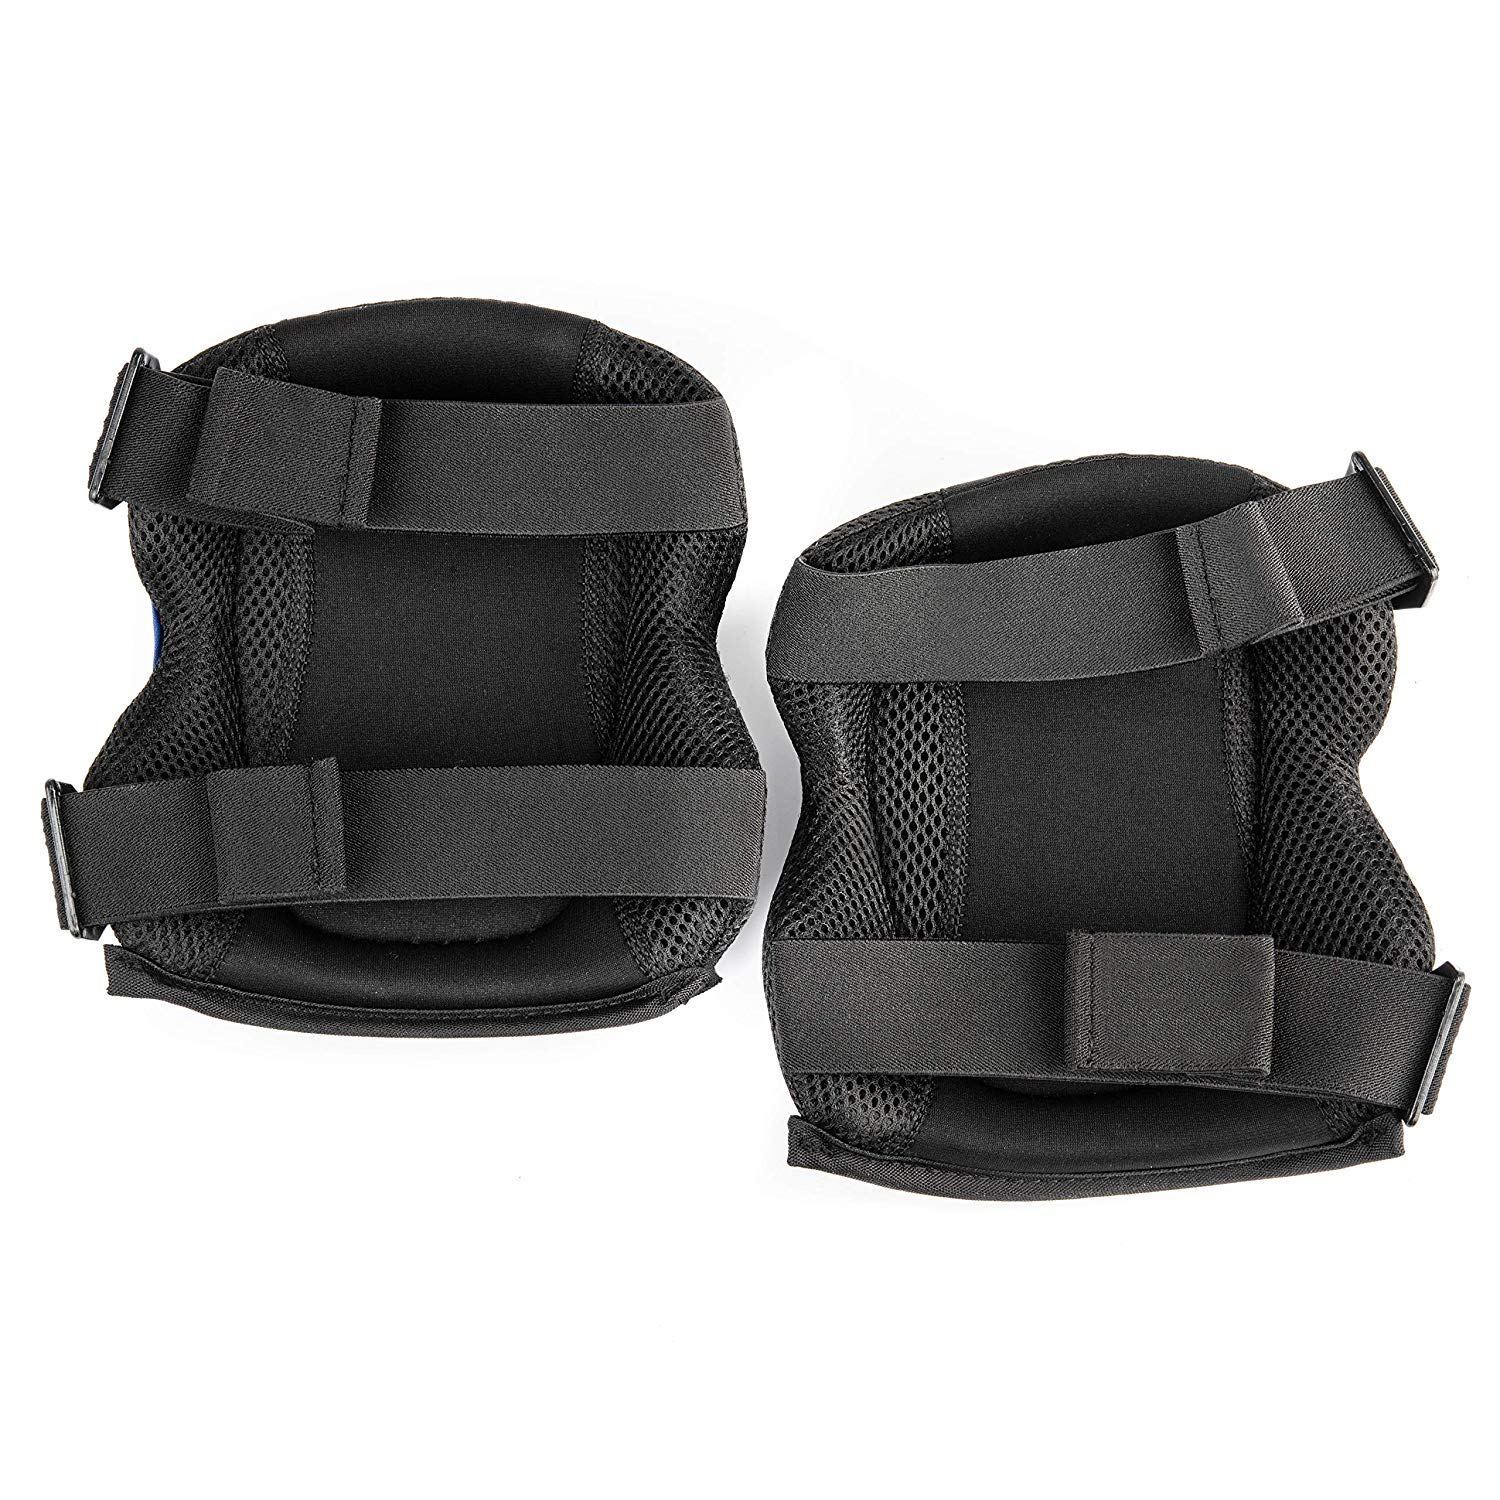 Rough Work Gear Professional Knee Pads - Built Tough To Last - Will Stay In Place All Day Long by Rough Work Gear (Image #8)